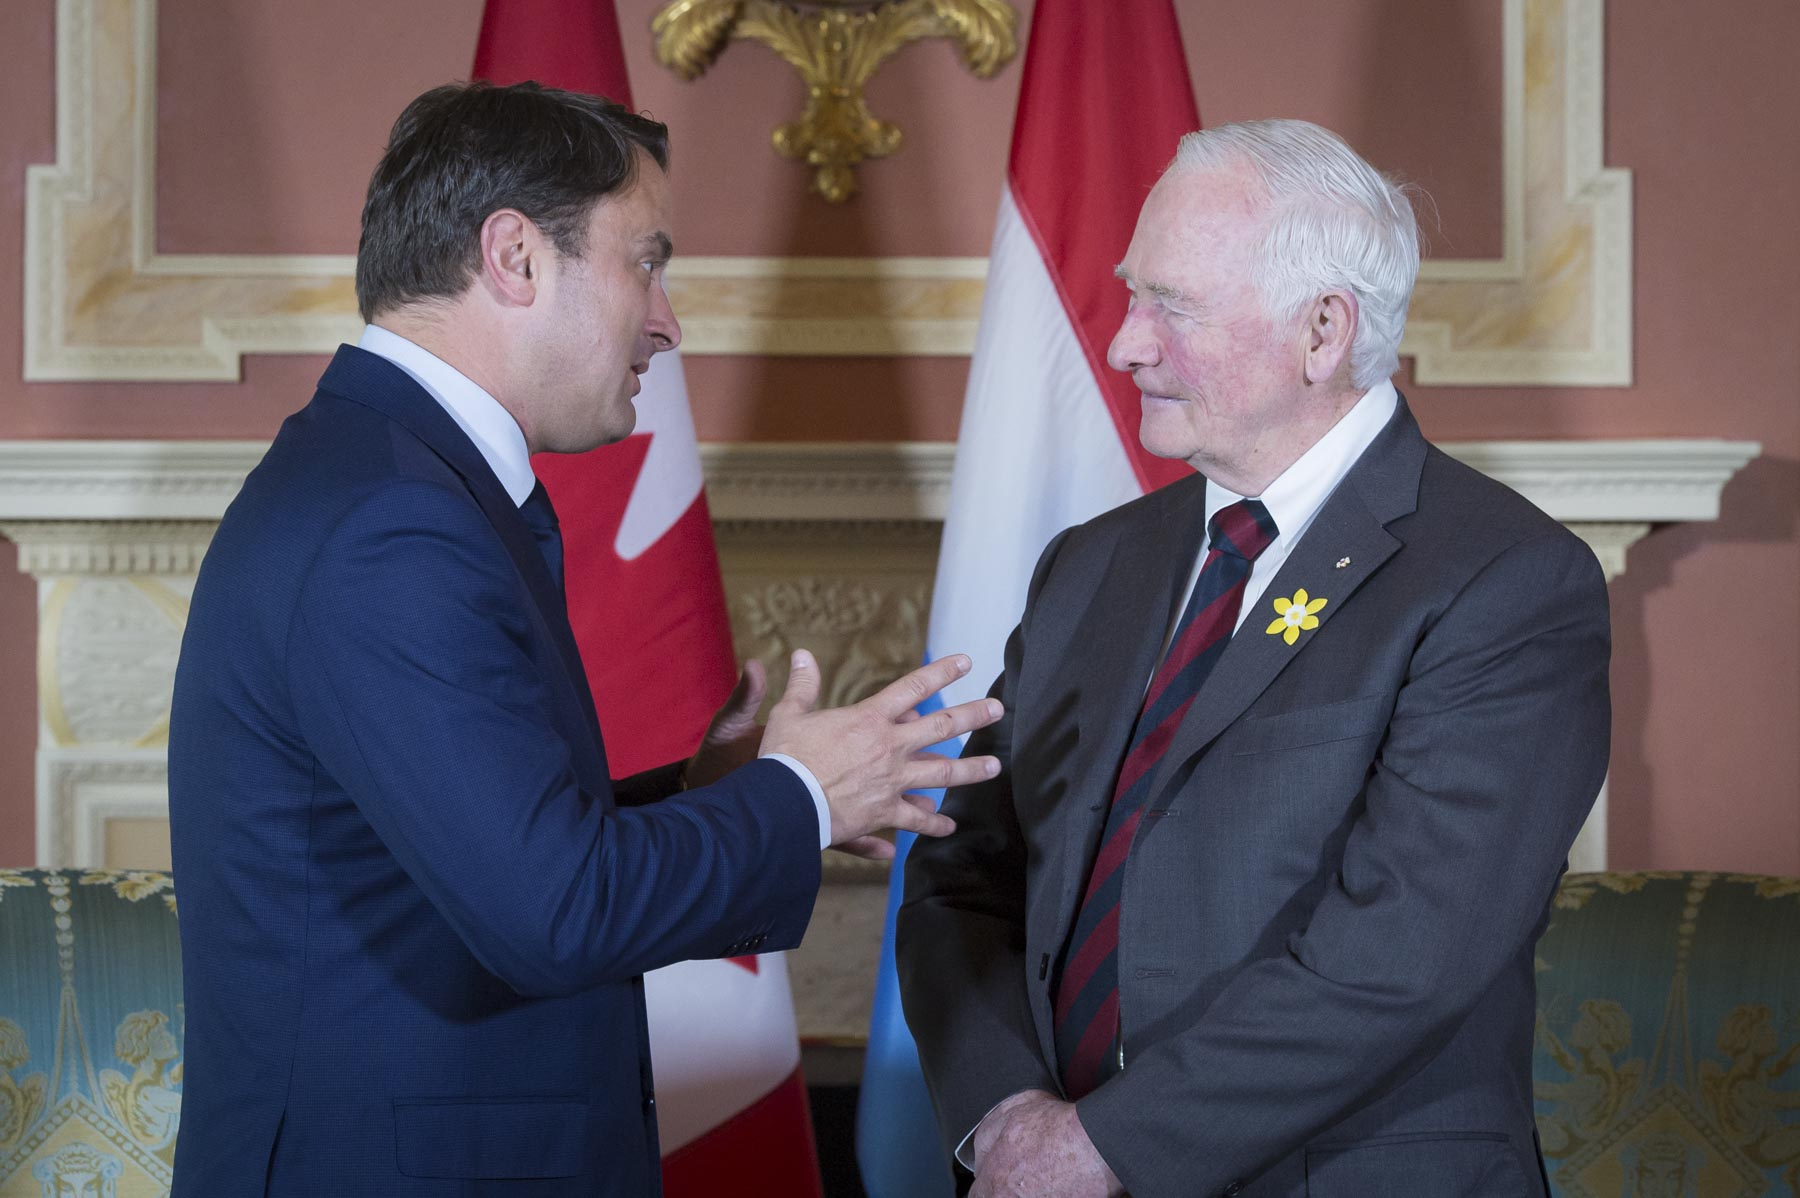 Son Excellence le très honorable David Johnston, gouverneur général du Canada, rencontrera Son Excellence monsieur Xavier Bettel, premier ministre du Grand-Duché de Luxembourg, à Rideau Hall, le mercredi 19 avril 2017.